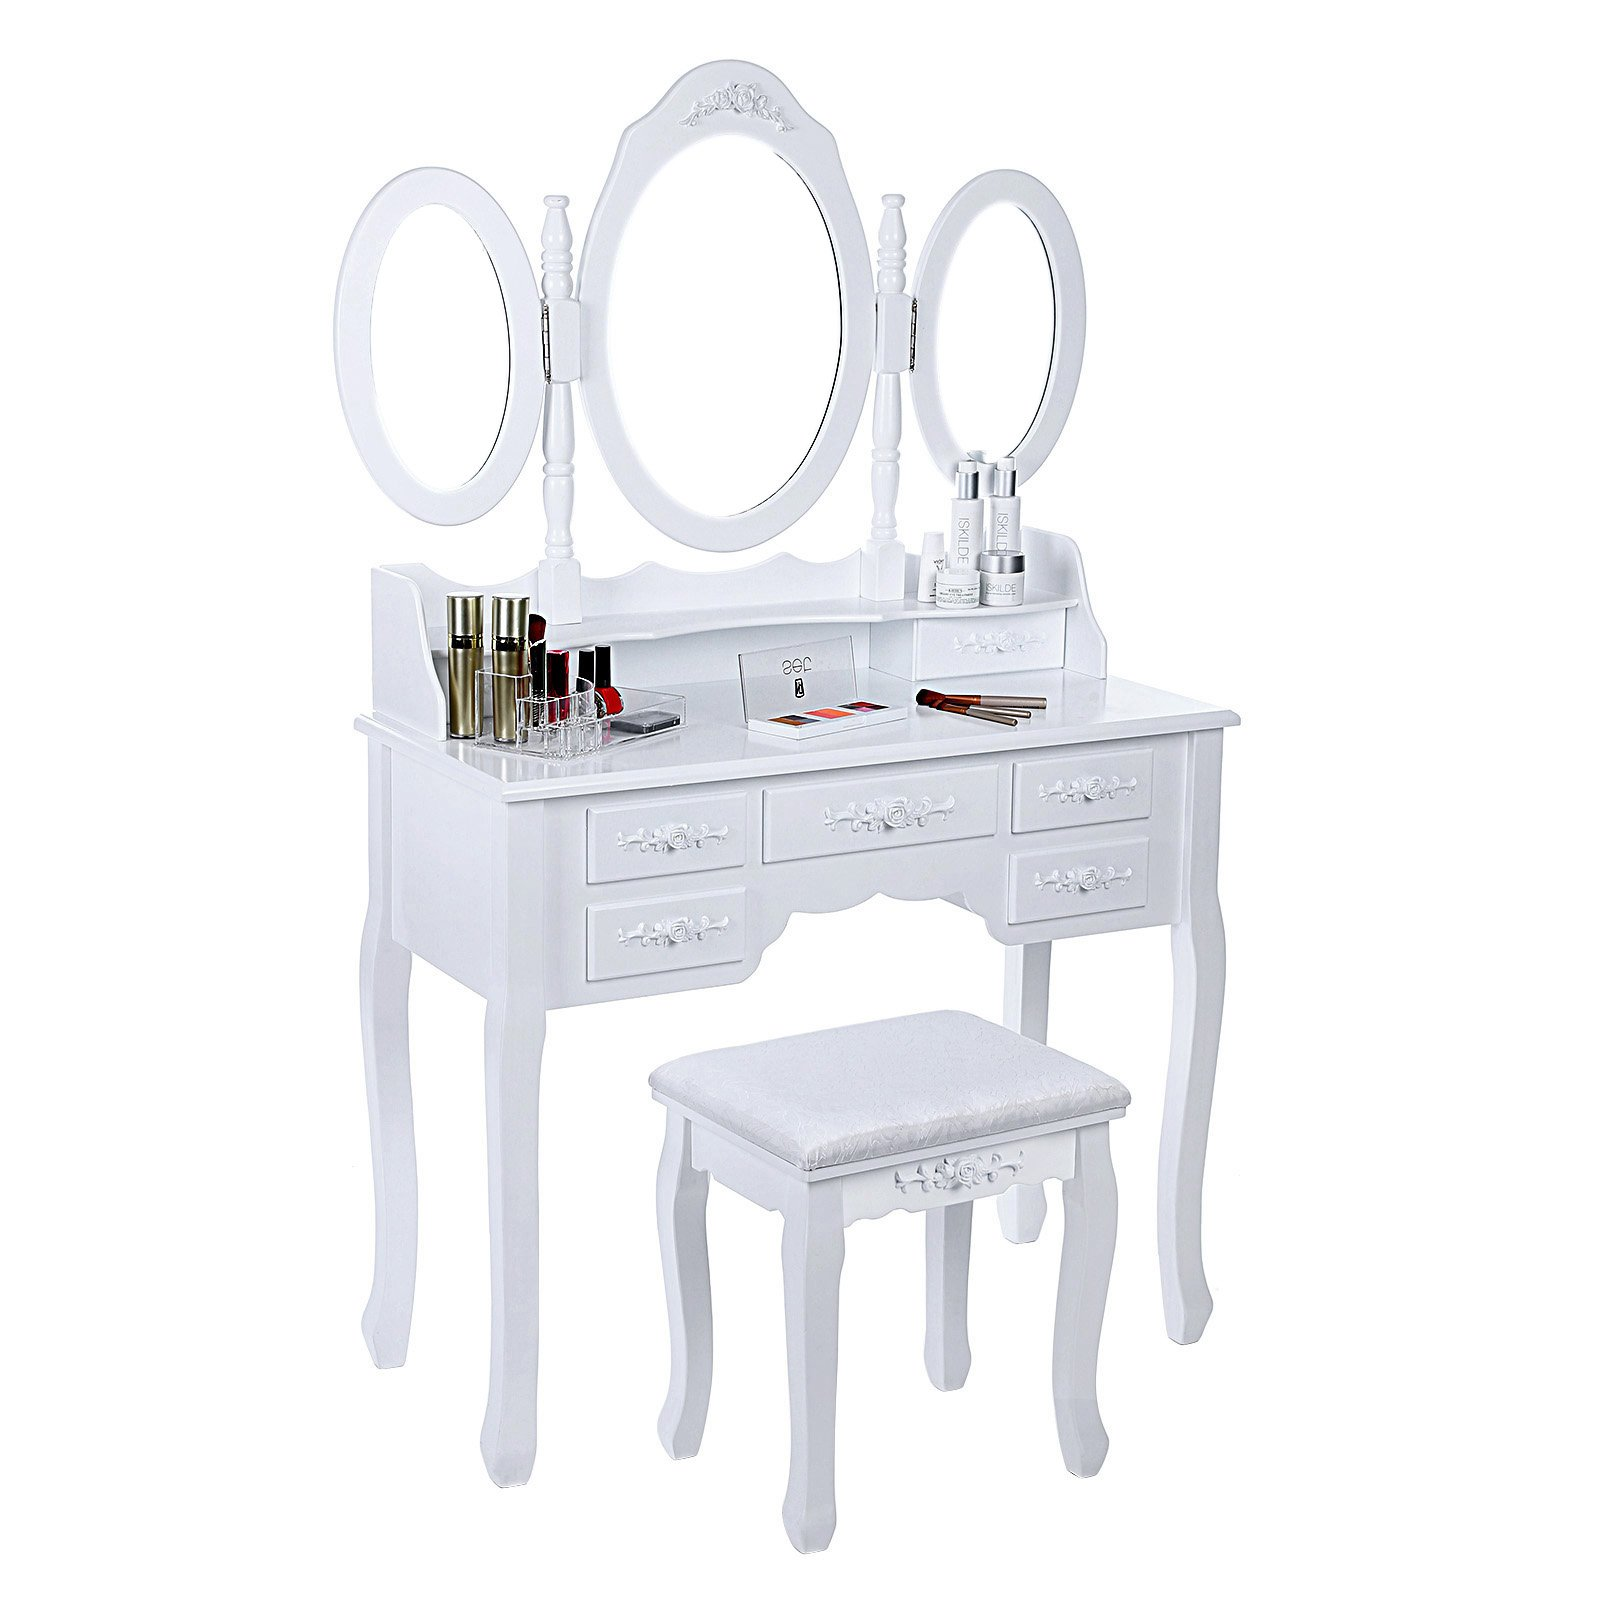 SONGMICS Vanity Set Tri-folding Mirror Make-up Dressing Table Padded Stool with 7 Drawers 2 Dividers White URDT91M